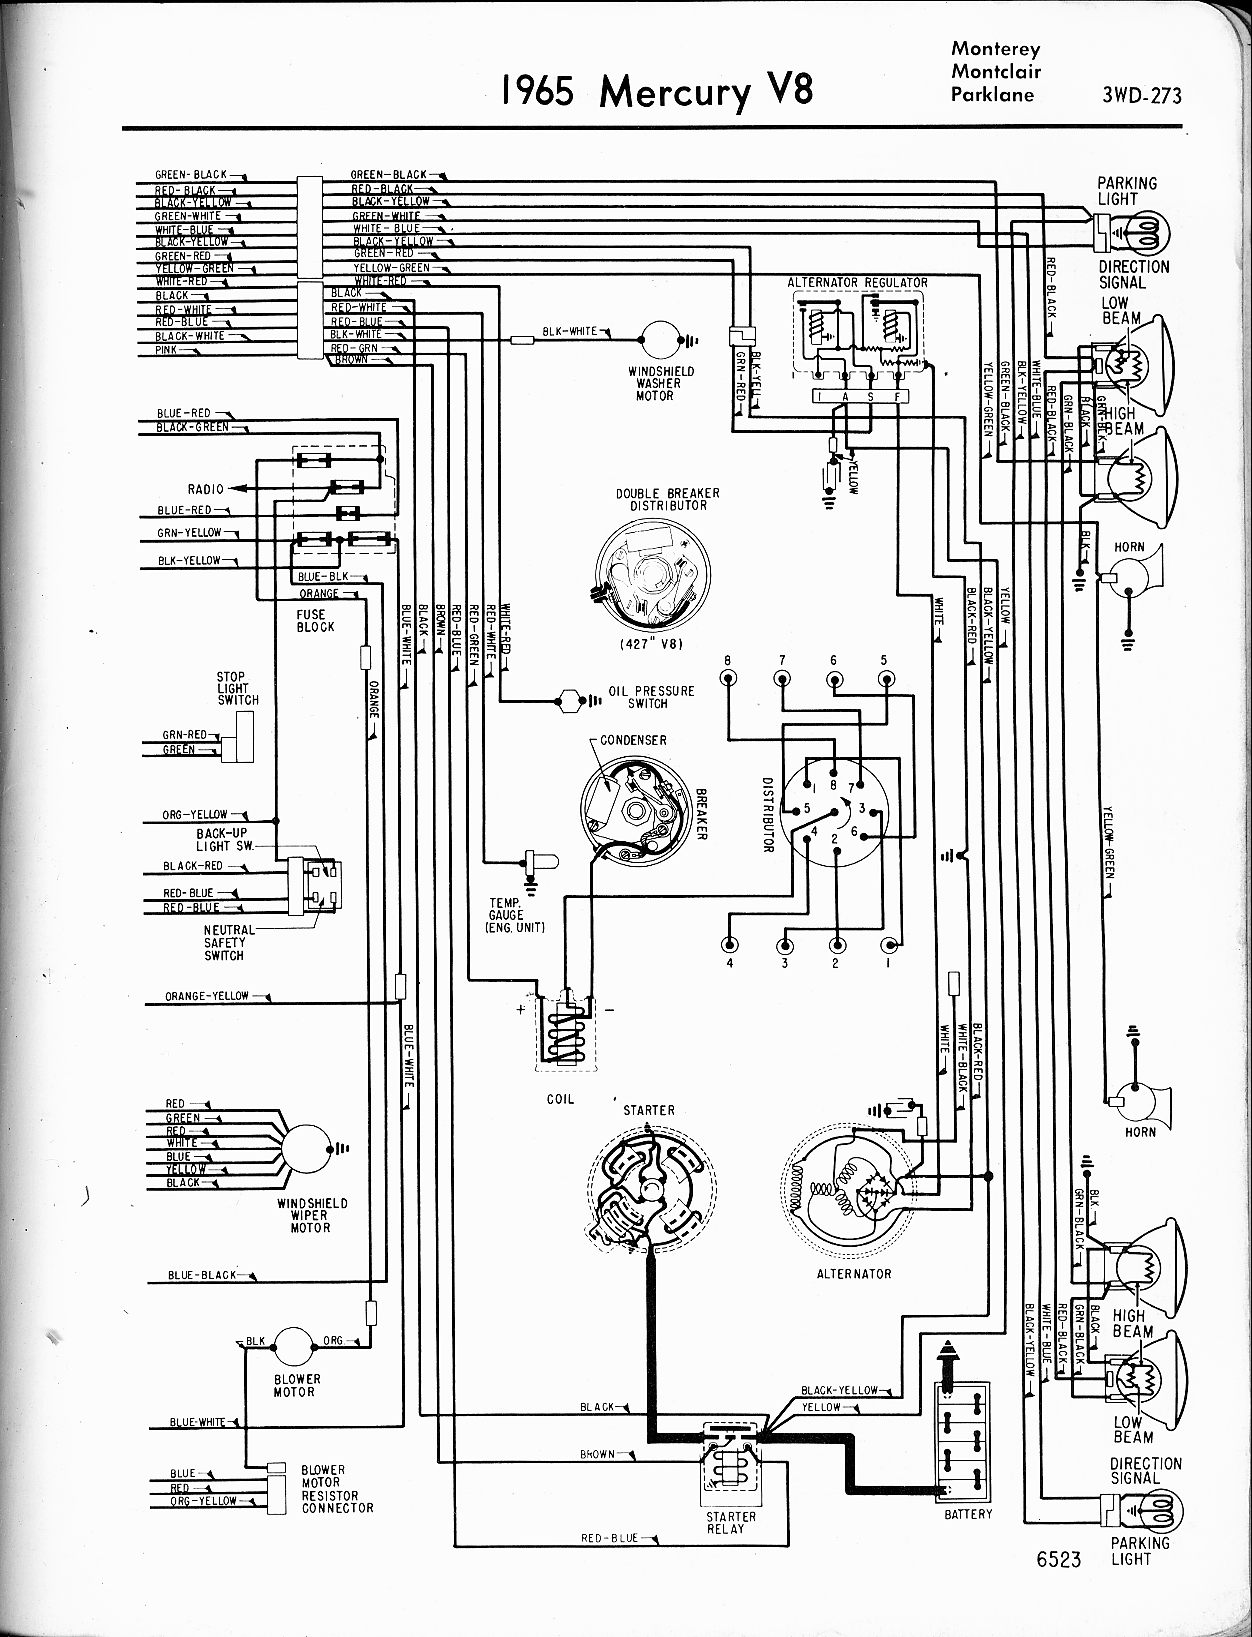 ford cougar wiring diagram 1940 ford wiring diagram \u2022 wiring Wiper Switch Diagram 72 Ranchero 1969 cougar wiring diagram